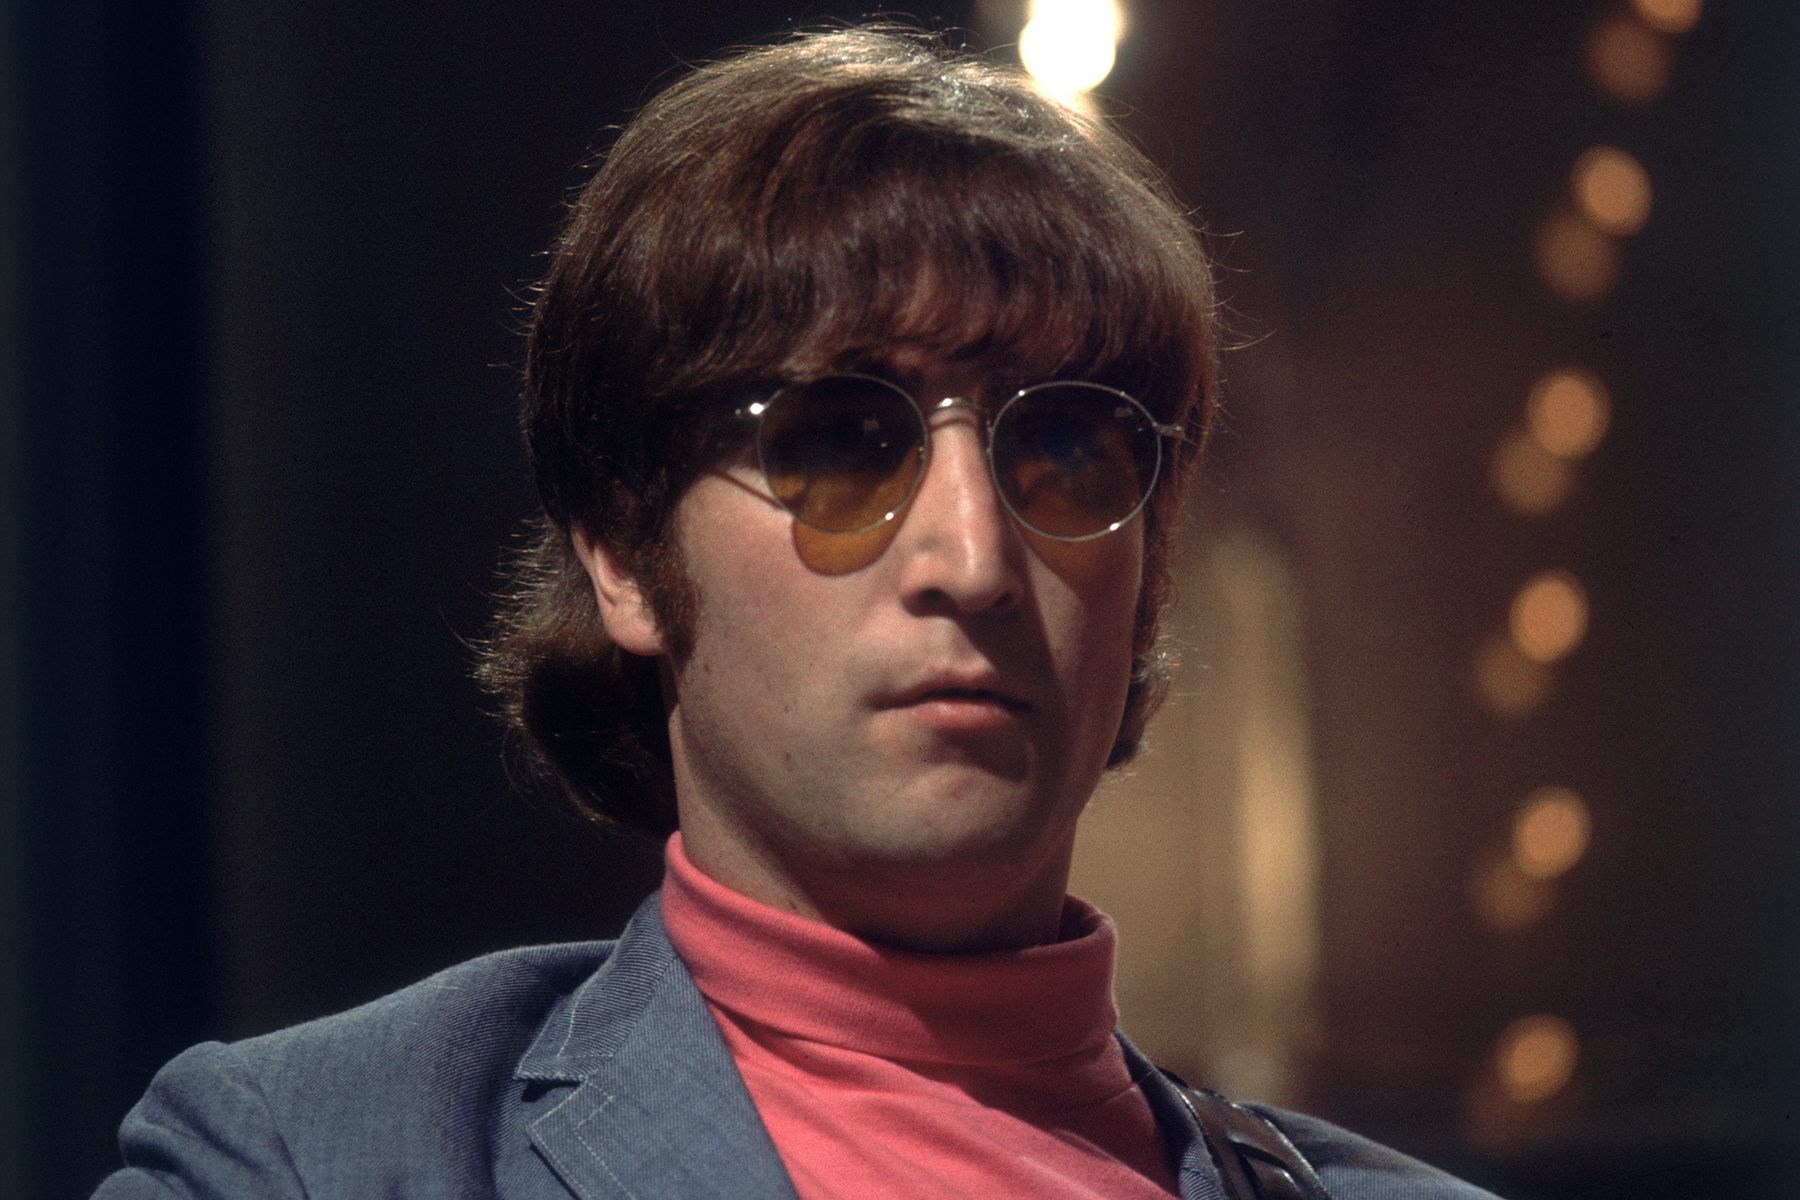 1966:  John Lennon (1940 - 1980) of the Beatles.  (Photo by Hulton Archive/Getty Images)